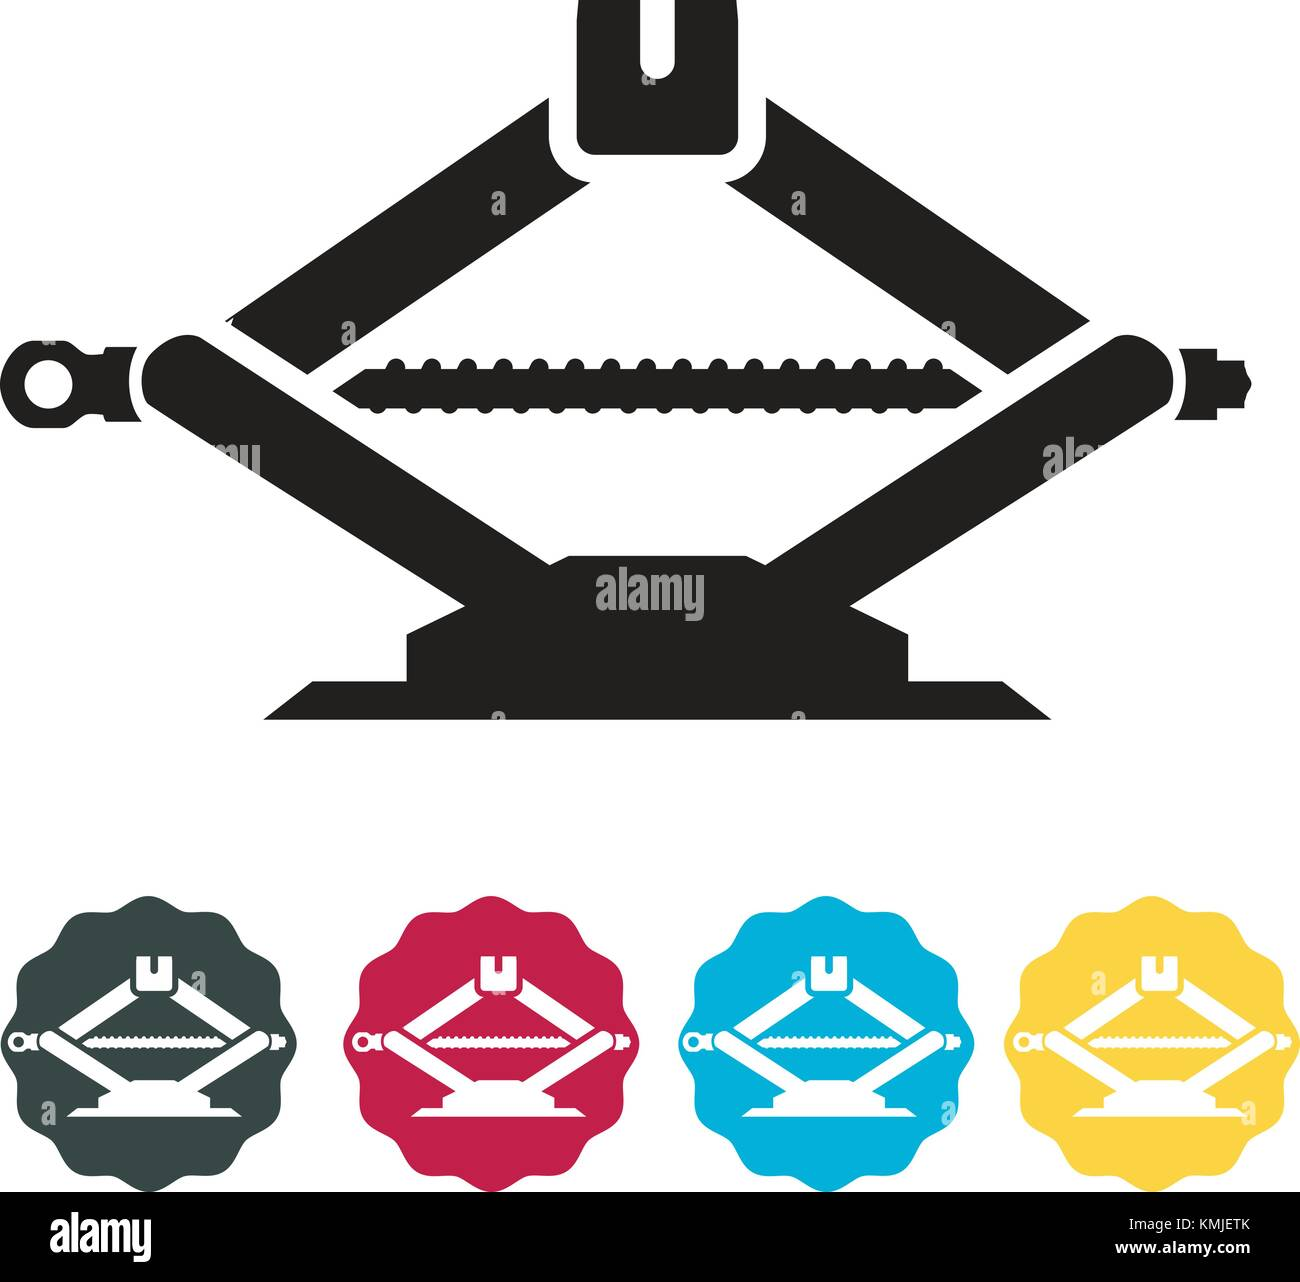 Car Tire Jack - Icon Illustration as EPS 10 File - Stock Vector